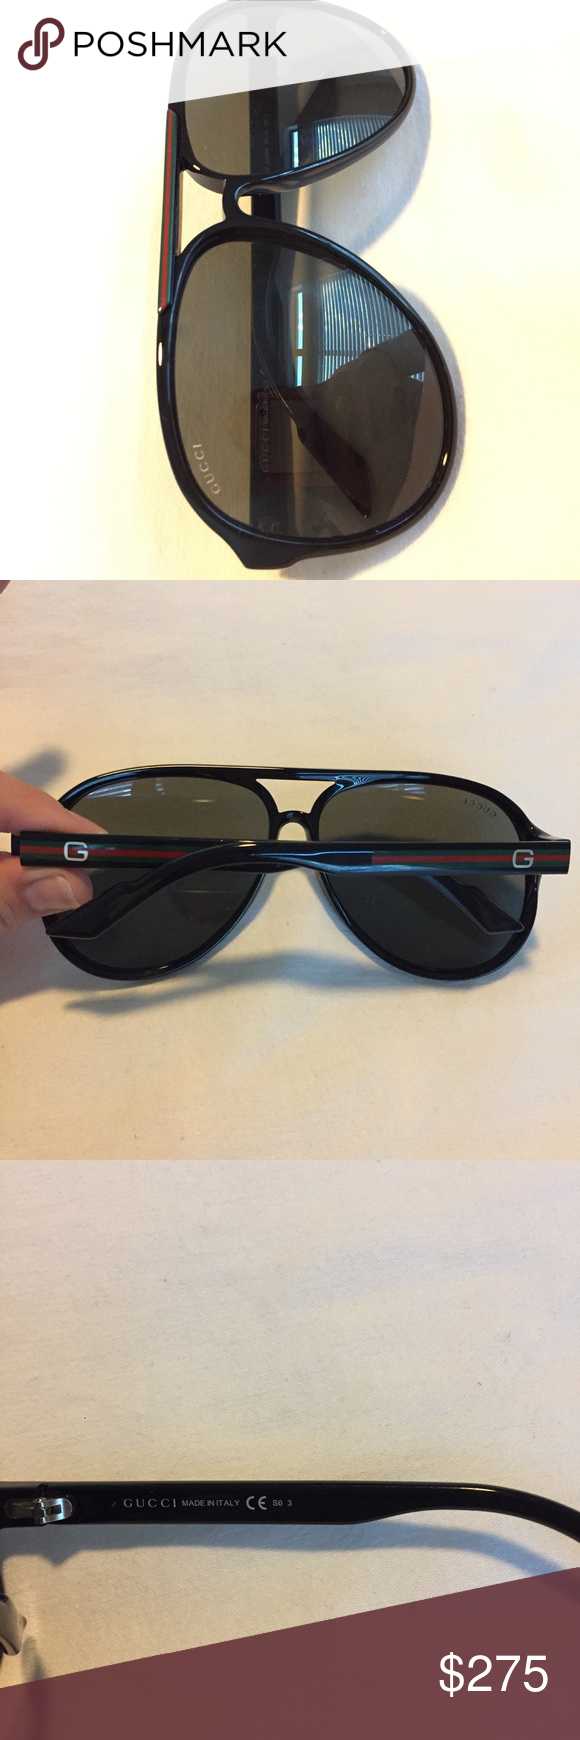 AUTHENTIC Gucci Sunglasses GG 1627 s D28 R6 AUTHENTIC Gucci Sunglasses.  They were a41d20a858